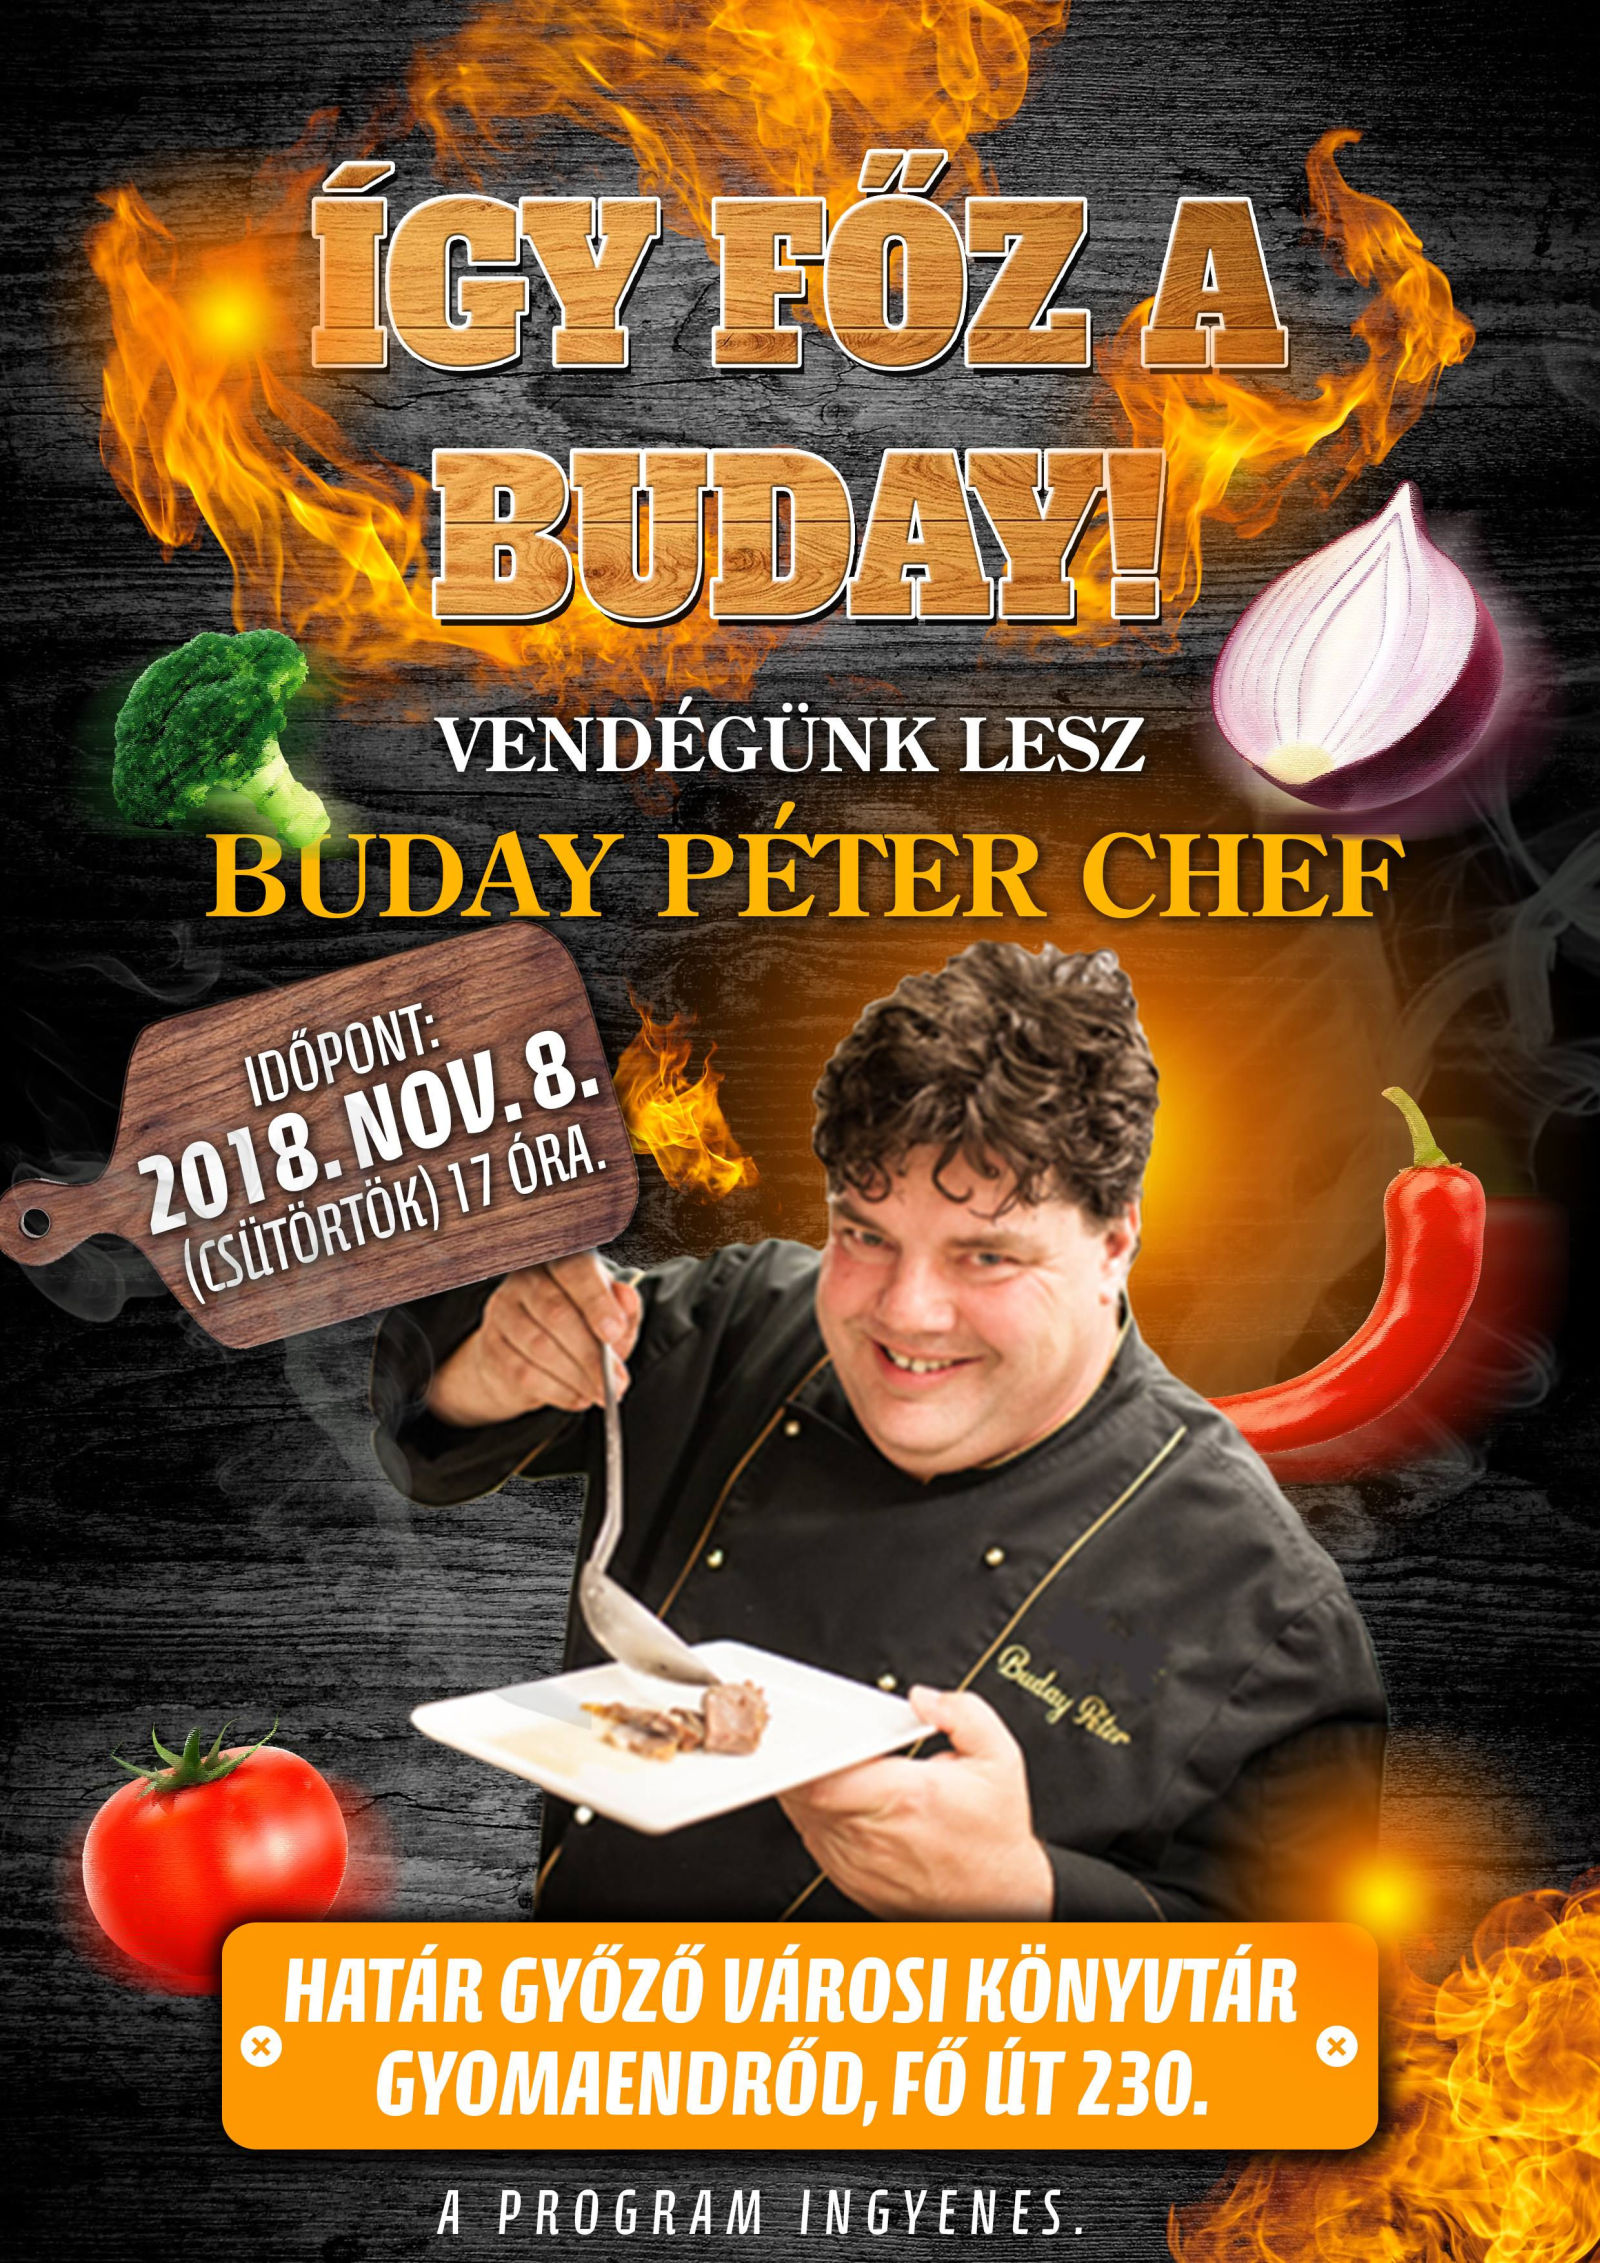 buday peter chef